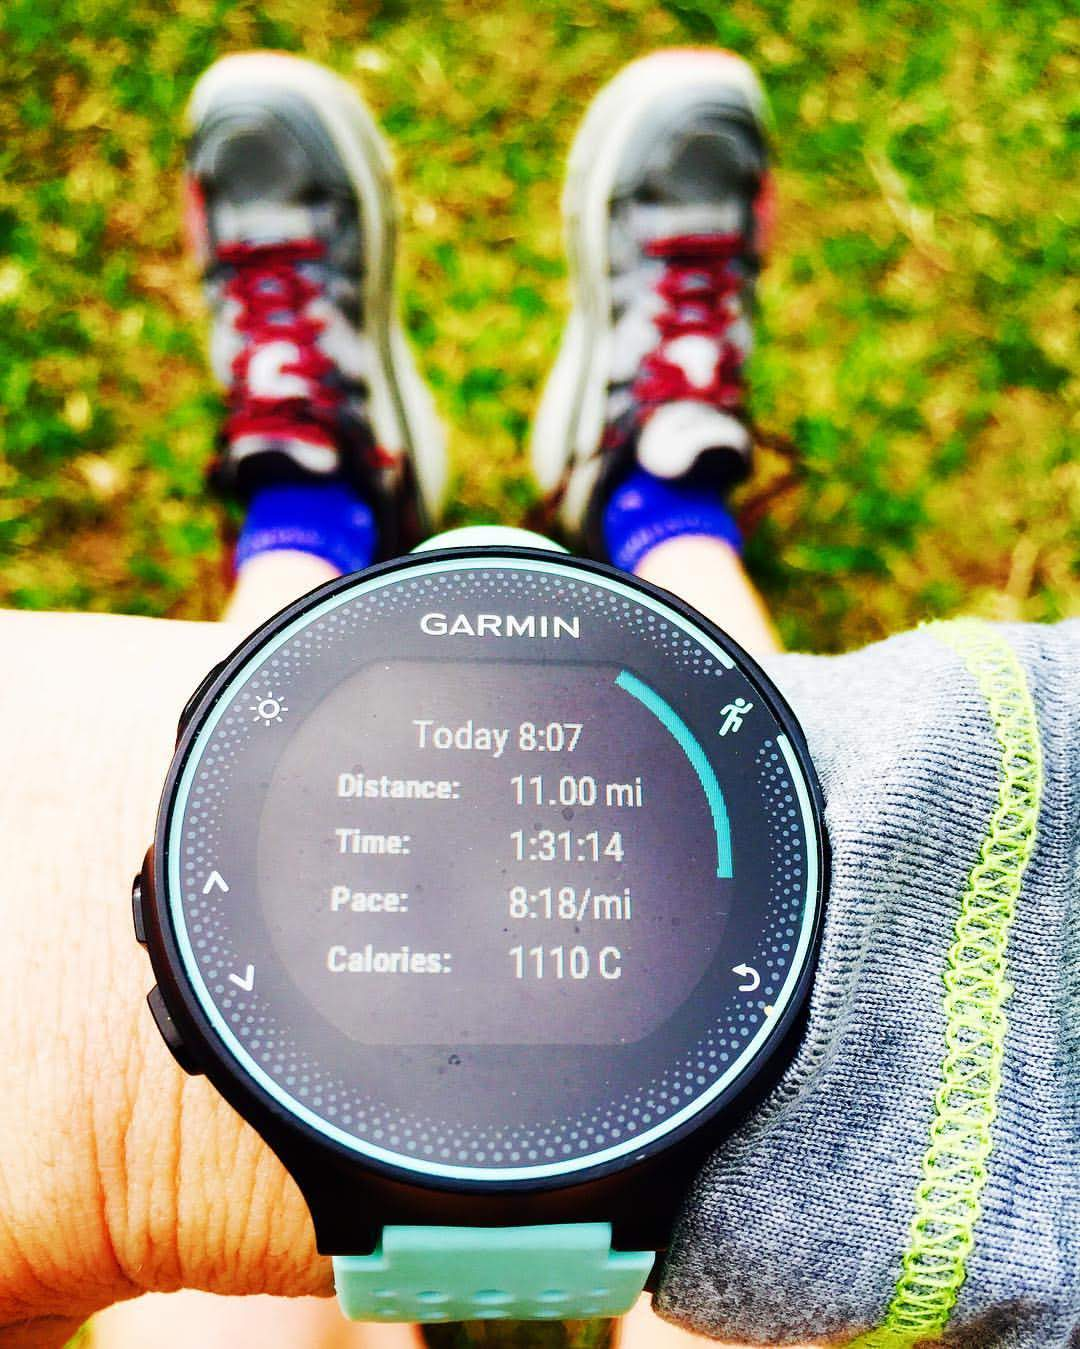 Adventure Watch: Garmin Forerunner 235 - impulse4adventure